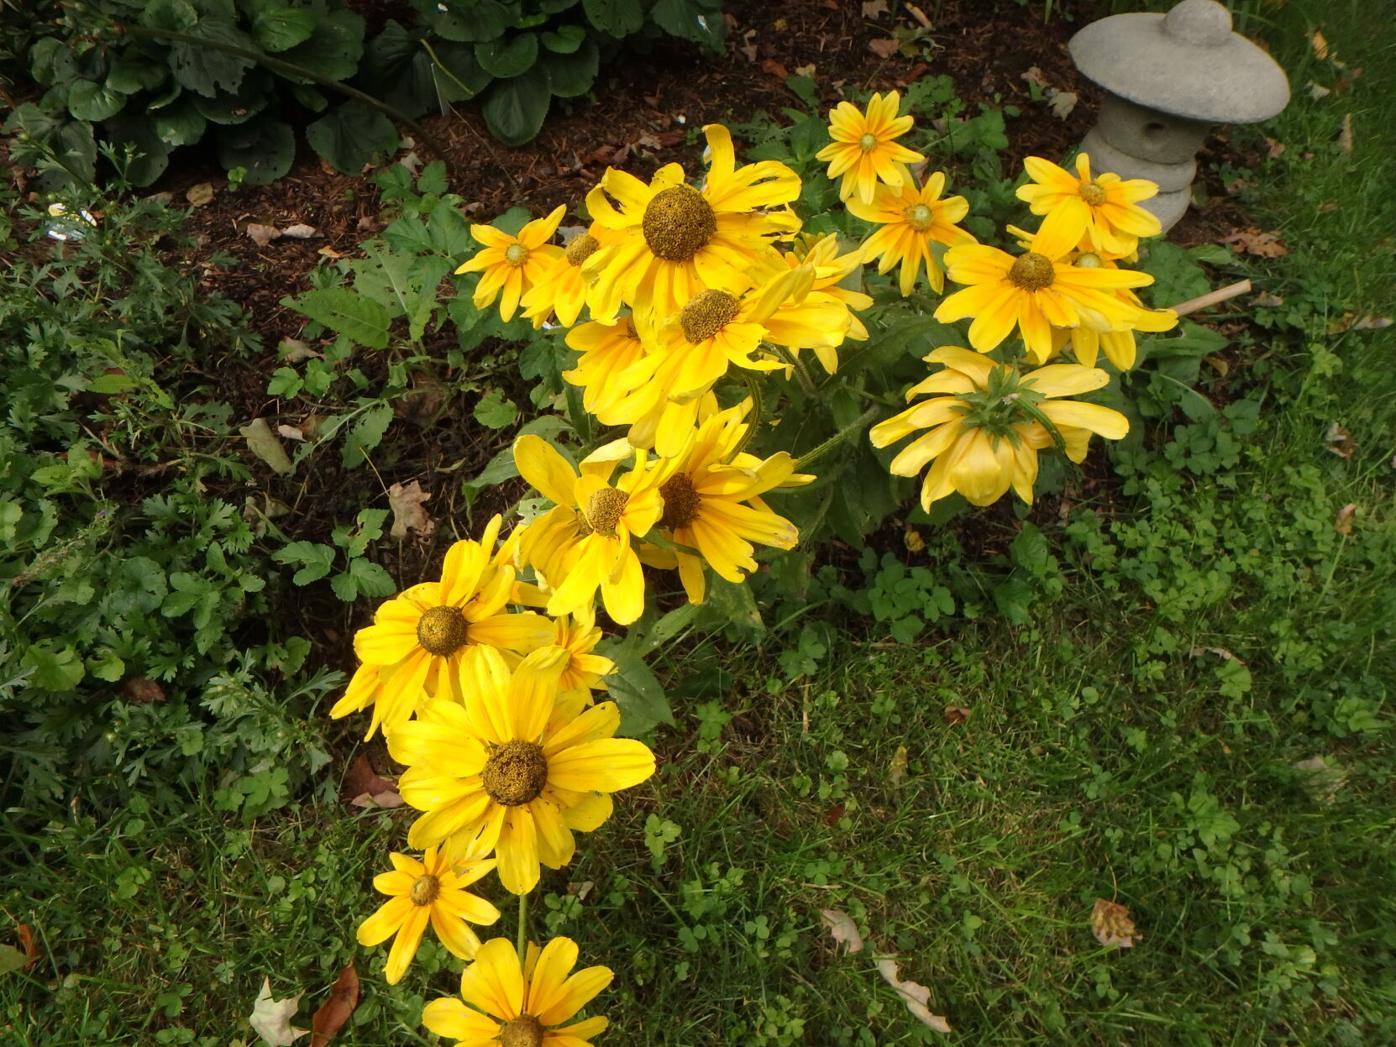 Planting with compost envigorates plants nicely.JPG